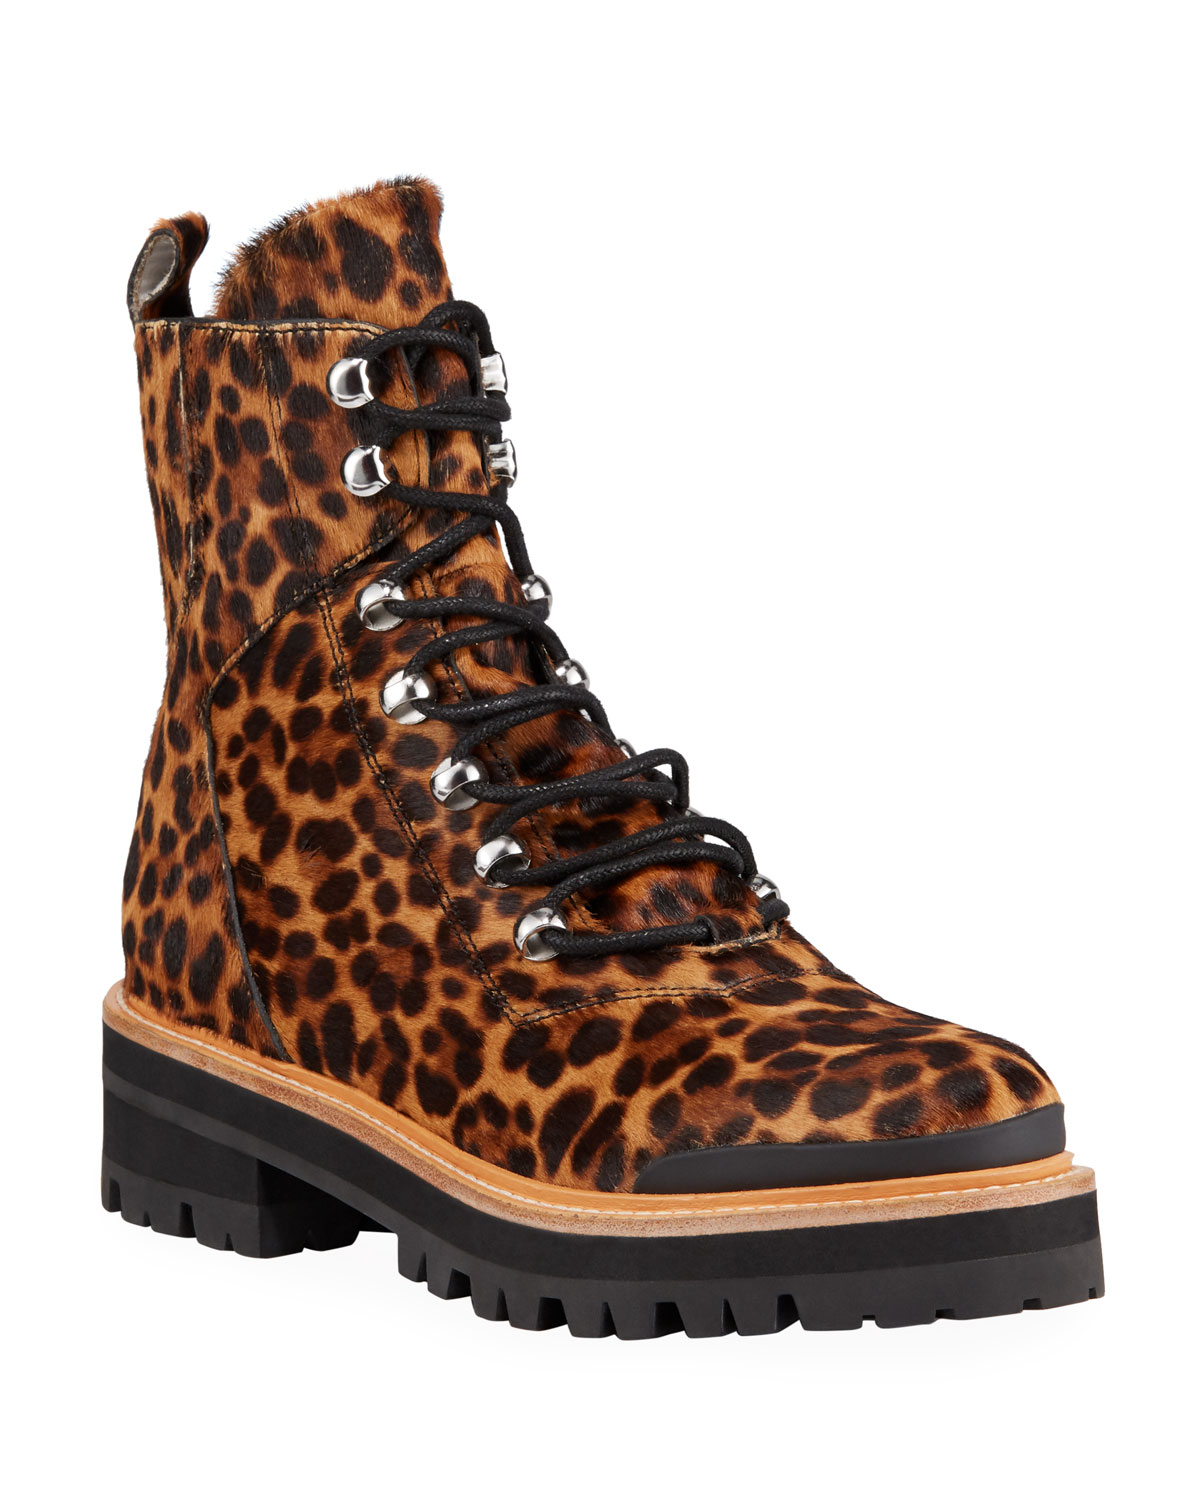 Izziely Leopard Hiker Boots